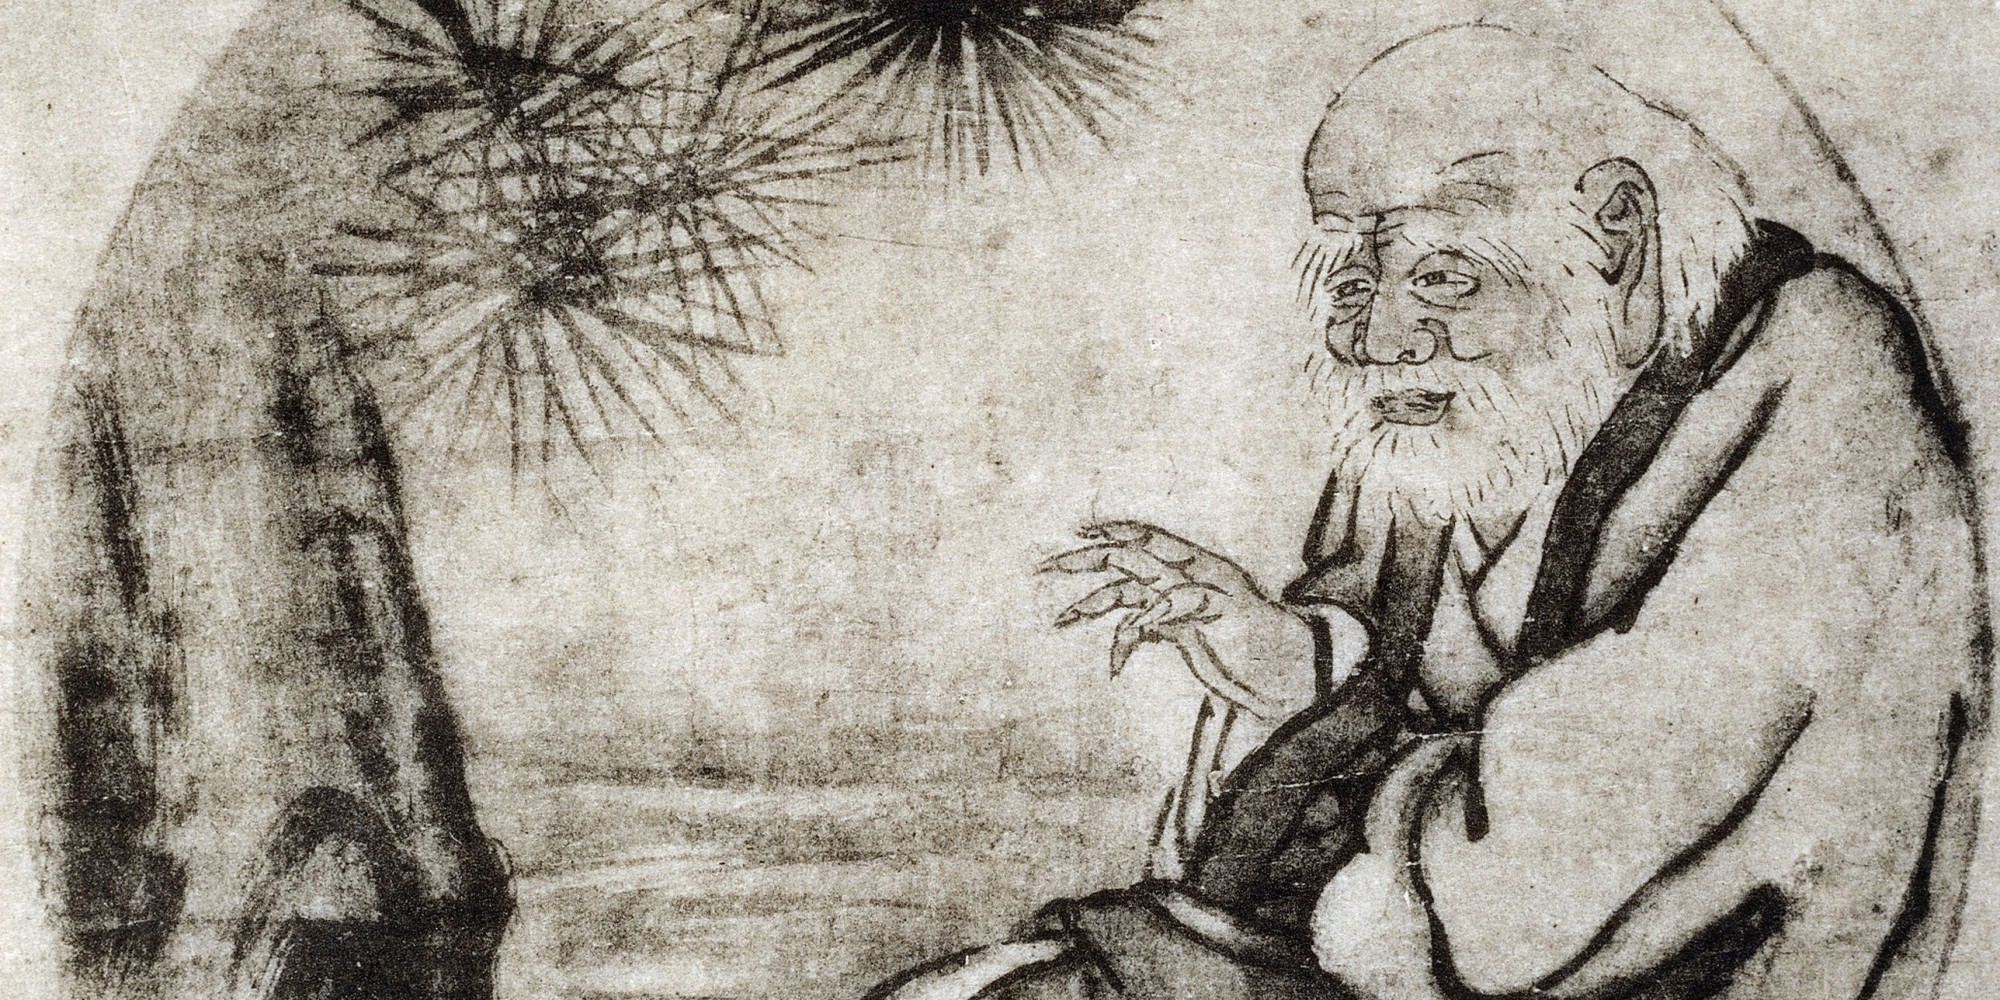 lao tzu taoism and moral philosophy But we can figure out that chinese philosophers, like lao zi, create also a theory  of ultimate  the question is important to separate theory of knowledge by ethical  advices wing-tsit chan claims that daoism as religion is a degeneration of  daoism as  a translation of lao-tzu's tao-te-ching and wang pi's  commentary.